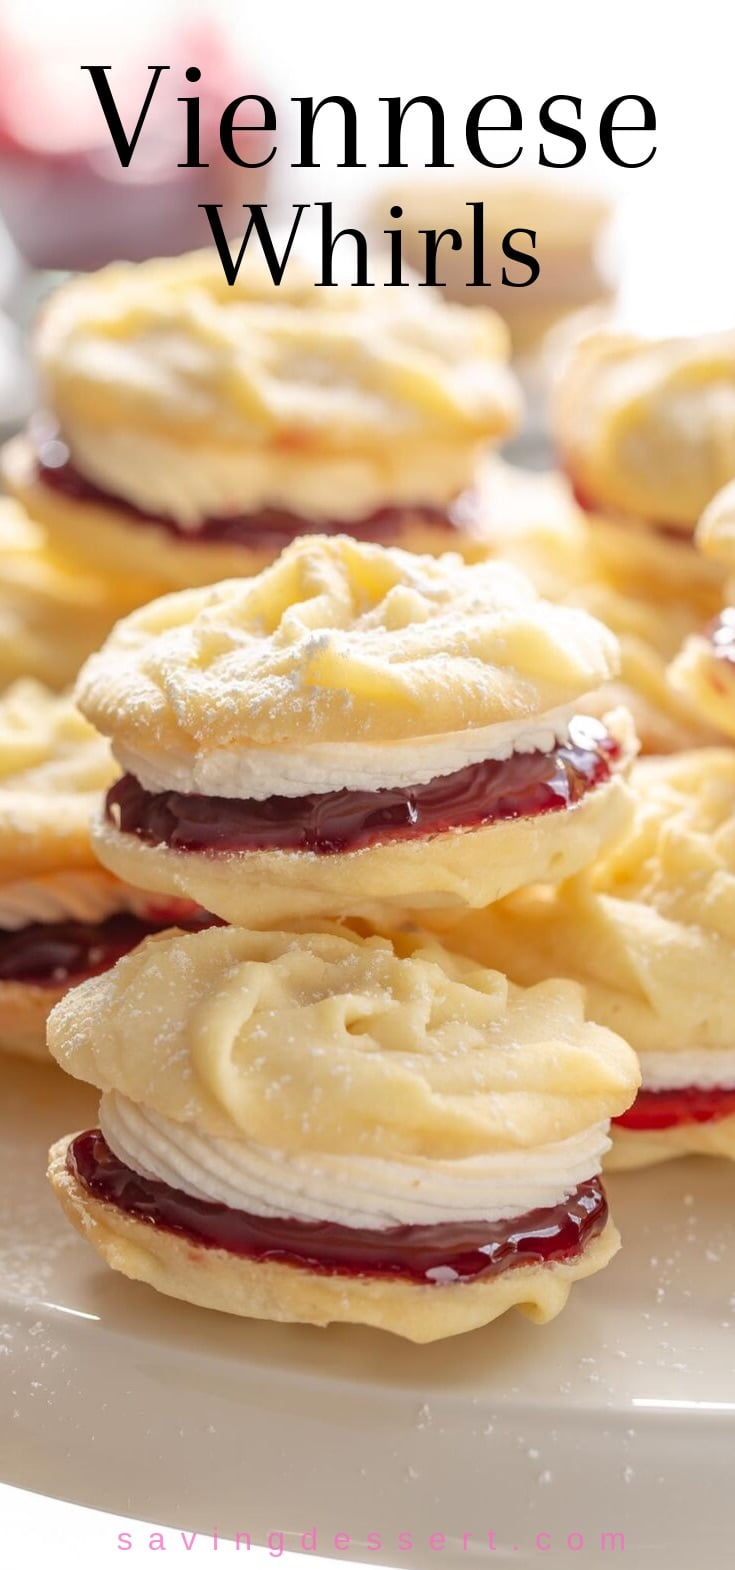 A stack of Viennese Whirls - butter cookies filled with jam and buttercream frosting